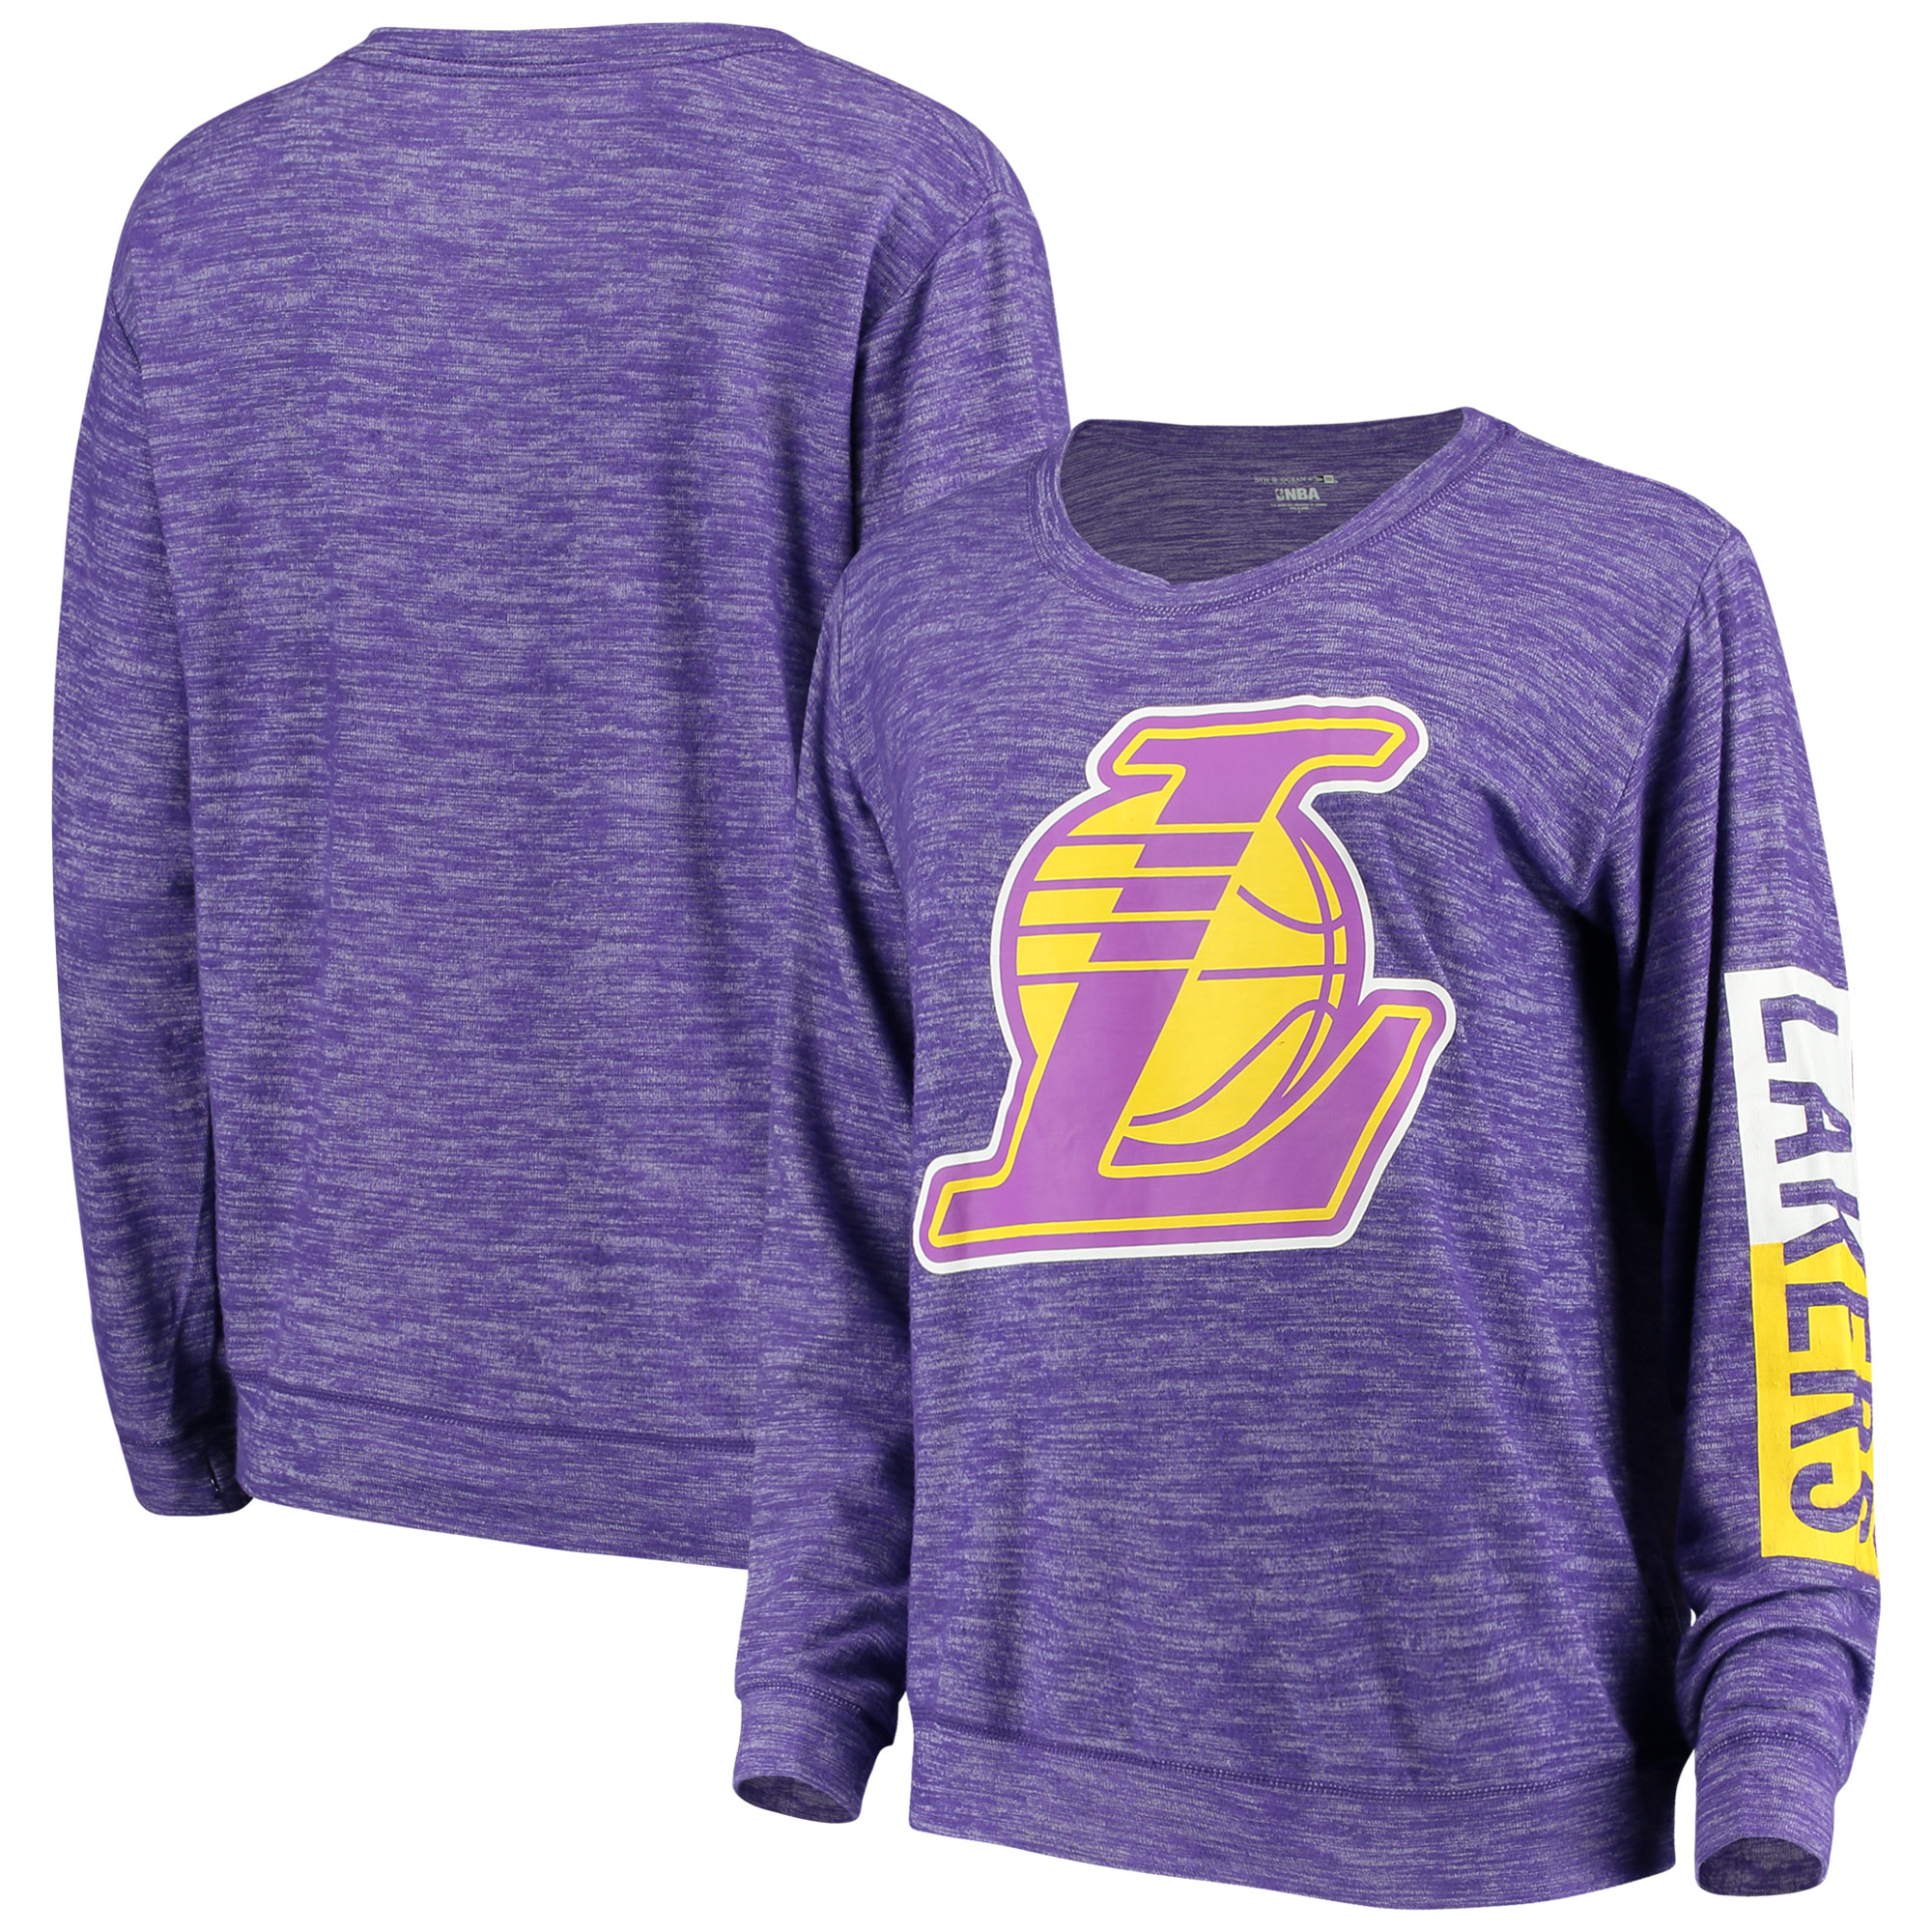 Los Angeles Lakers New Era Women's Space Dye Knit Tri-Blend Long Sleeve T-Shirt - Heathered Purple